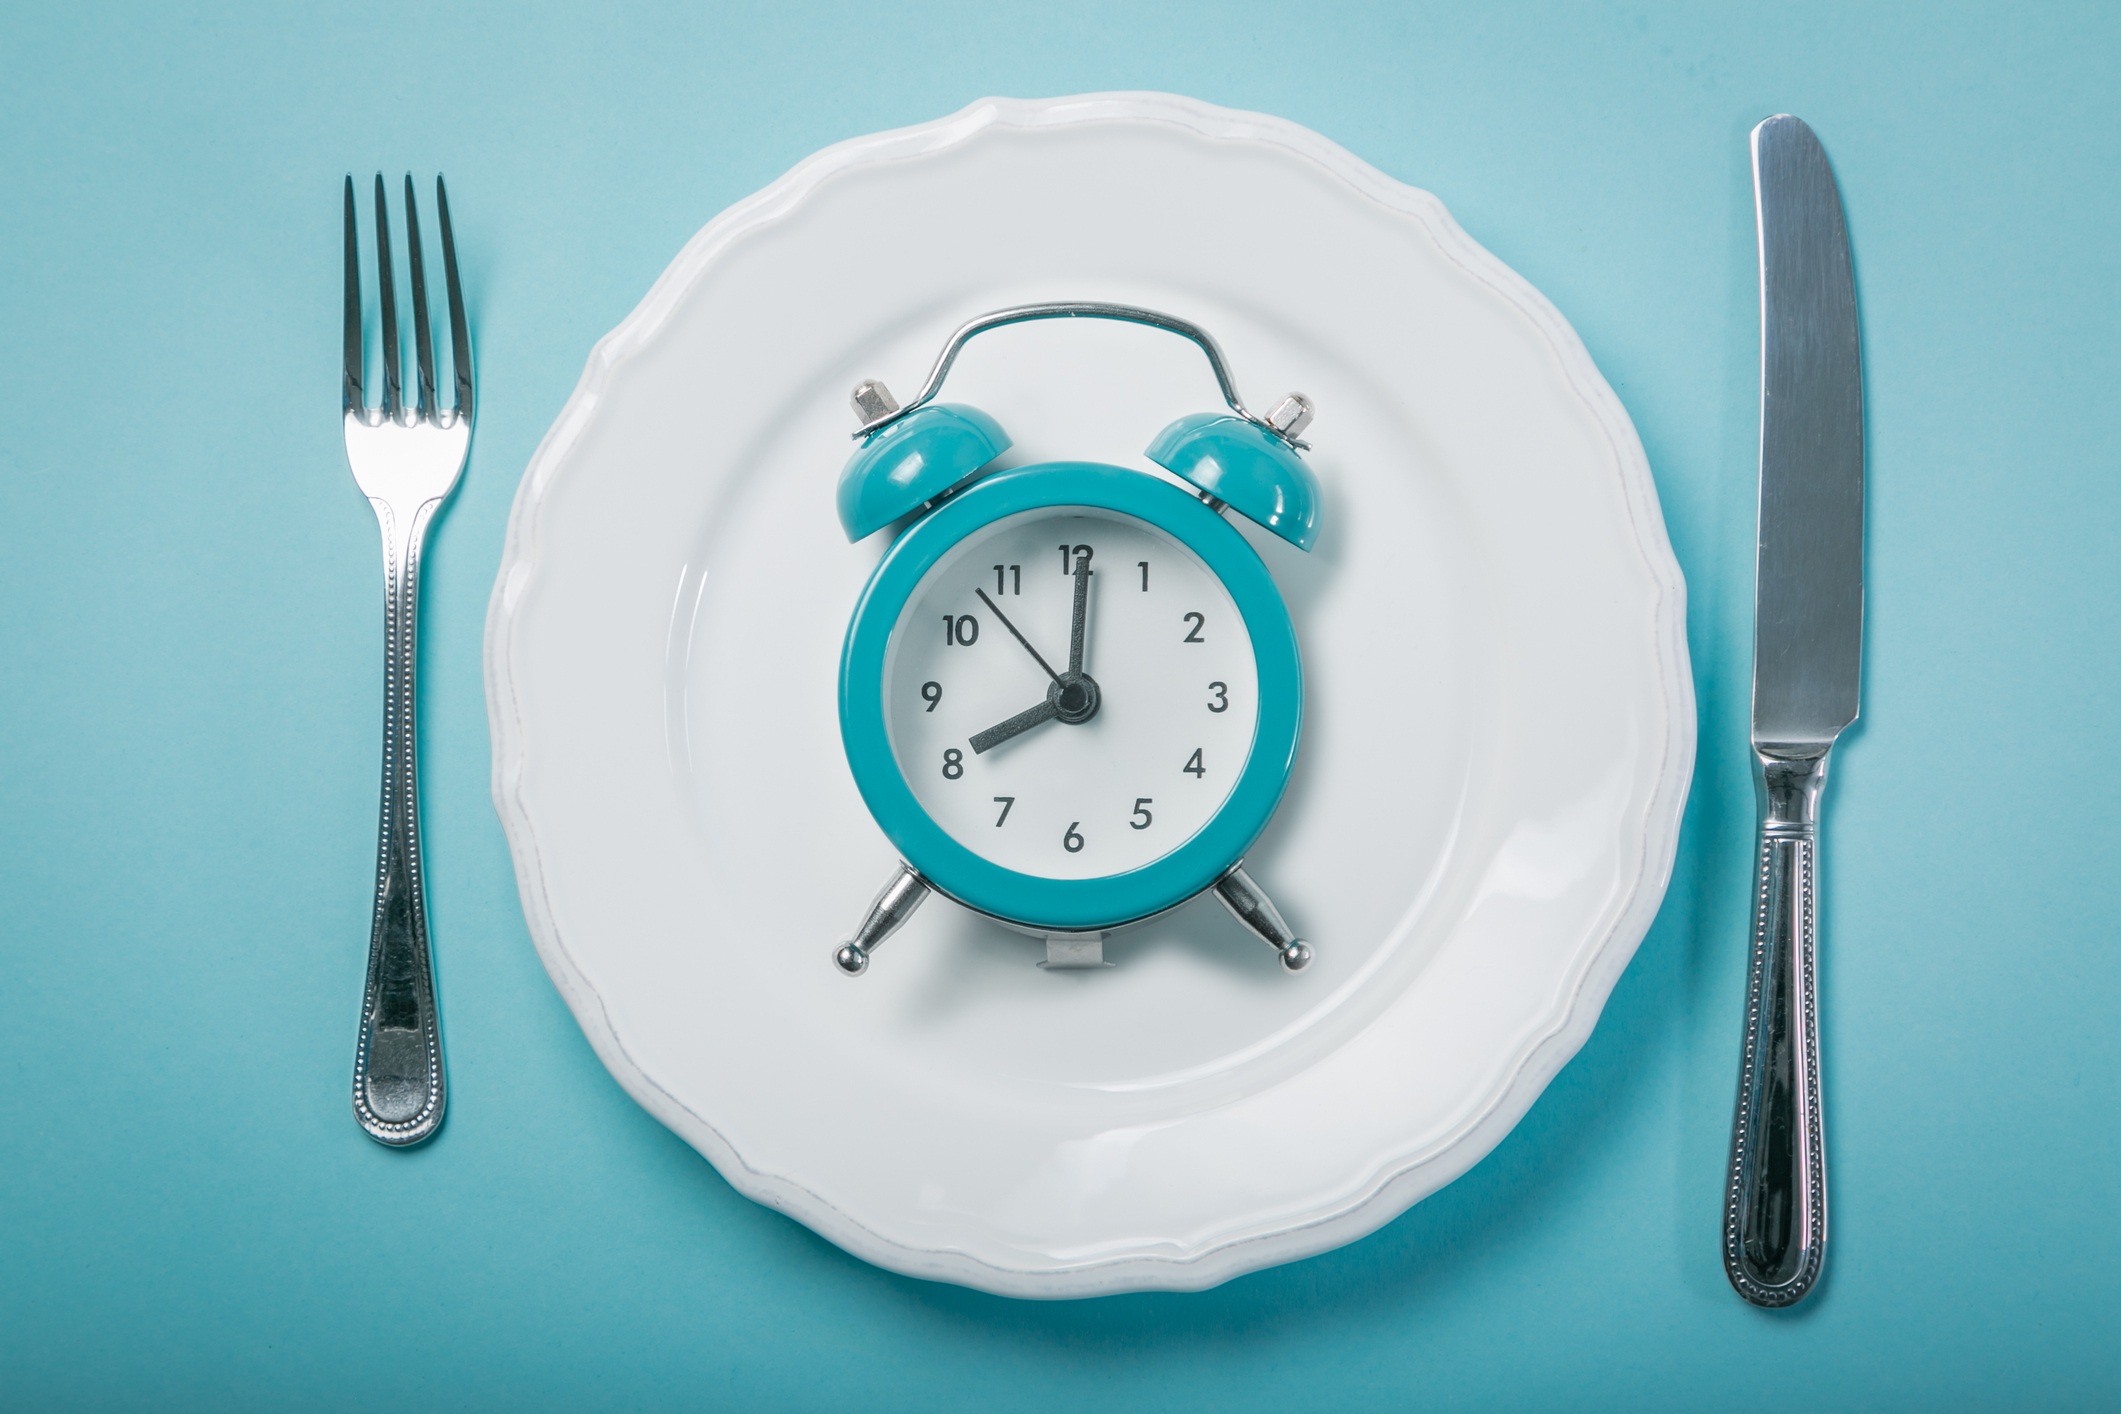 Periodic Fasting is great for weight loss. Learn more at Mooney and Berry Gynecologists in Hammond, LA. Weight loss centers in Louisiana. Hammond Gynecologists. Hammond GYN. Hammond OB-Gyn